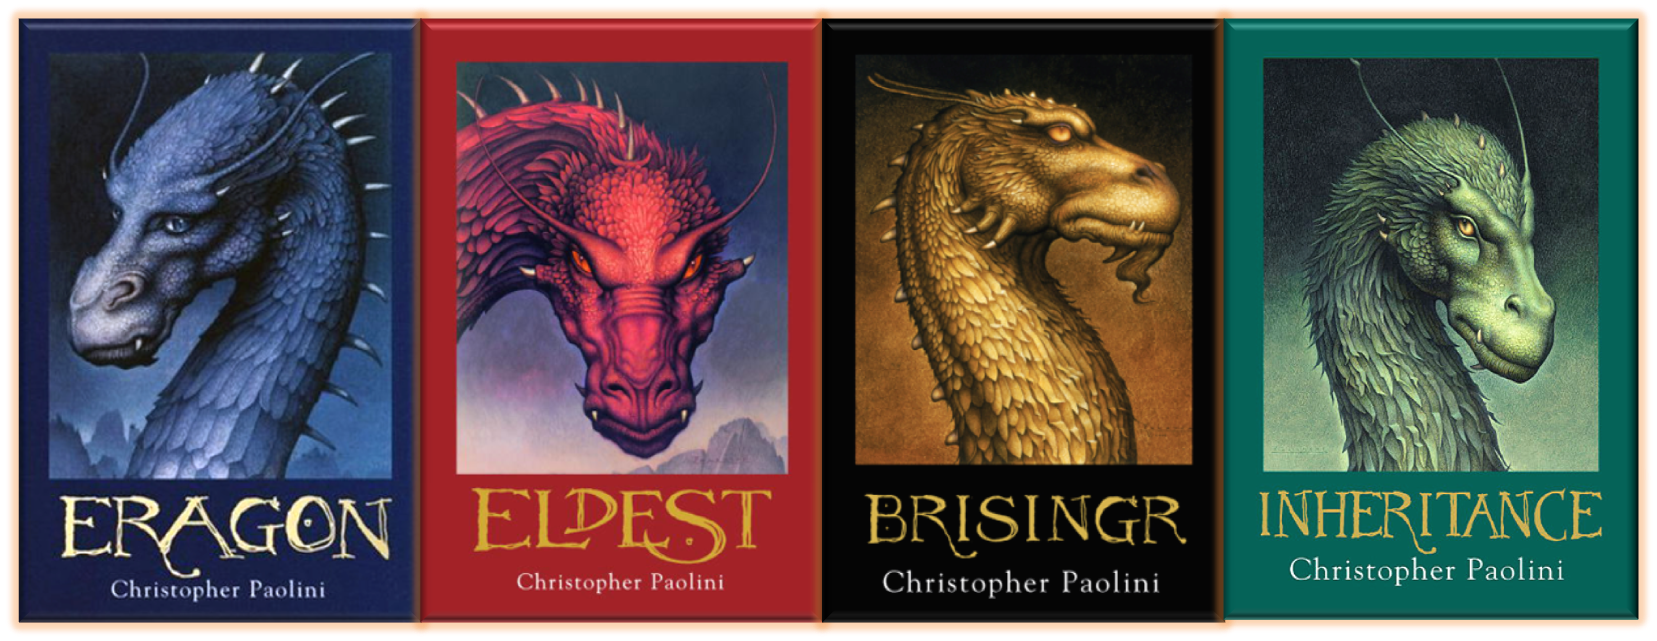 Inheritance: Week 4: Inheritance Cycle